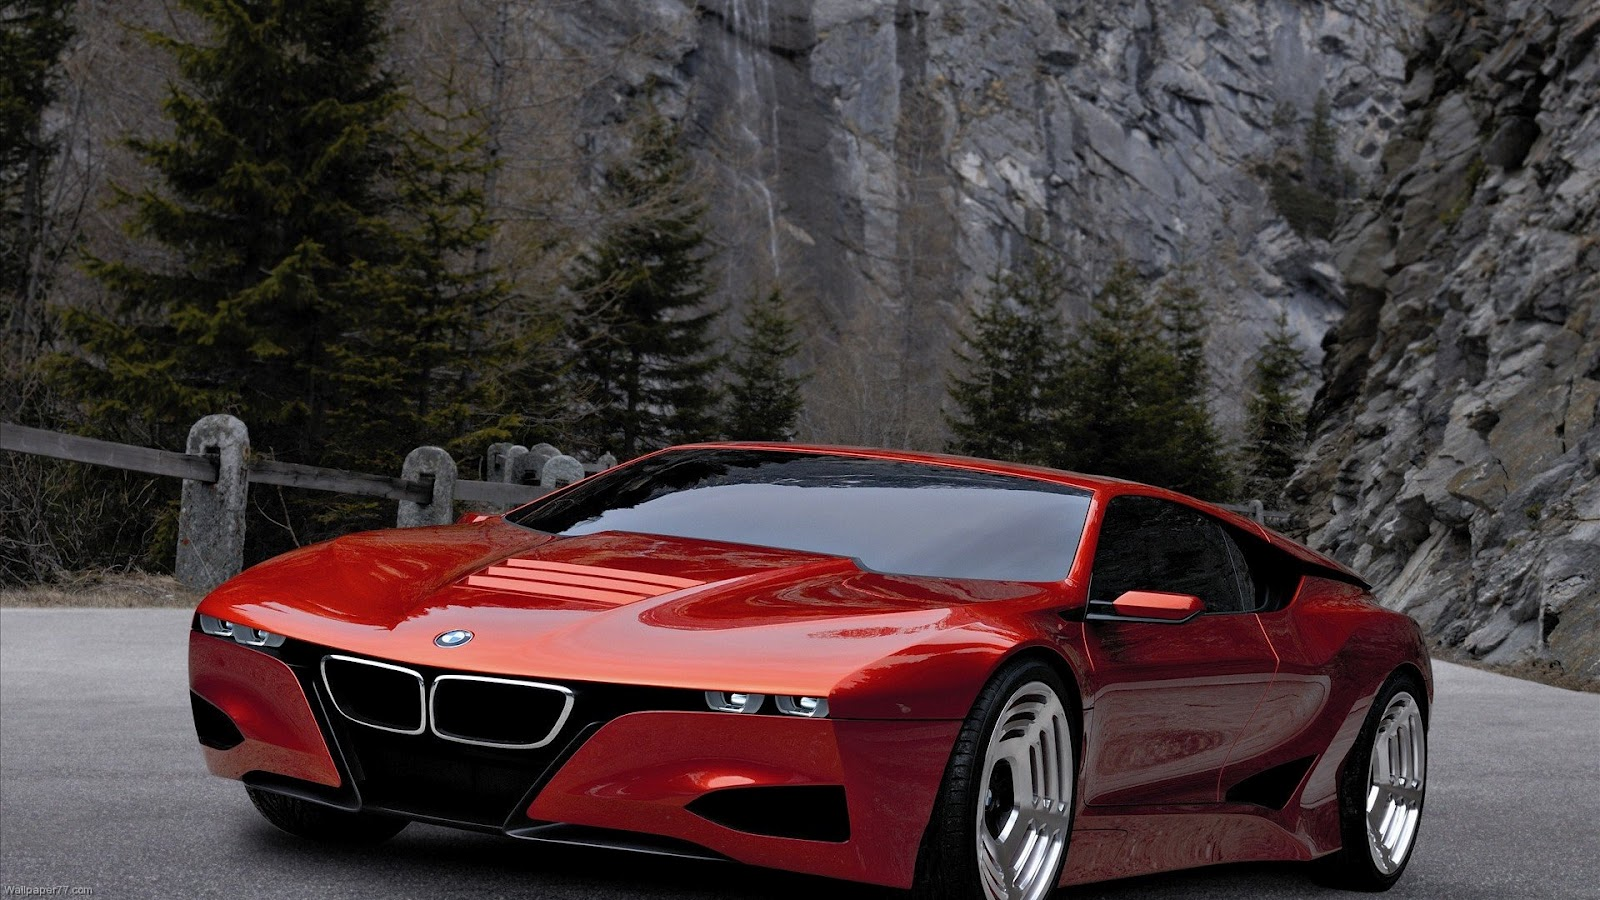 concept car hd wallpaper - photo #20